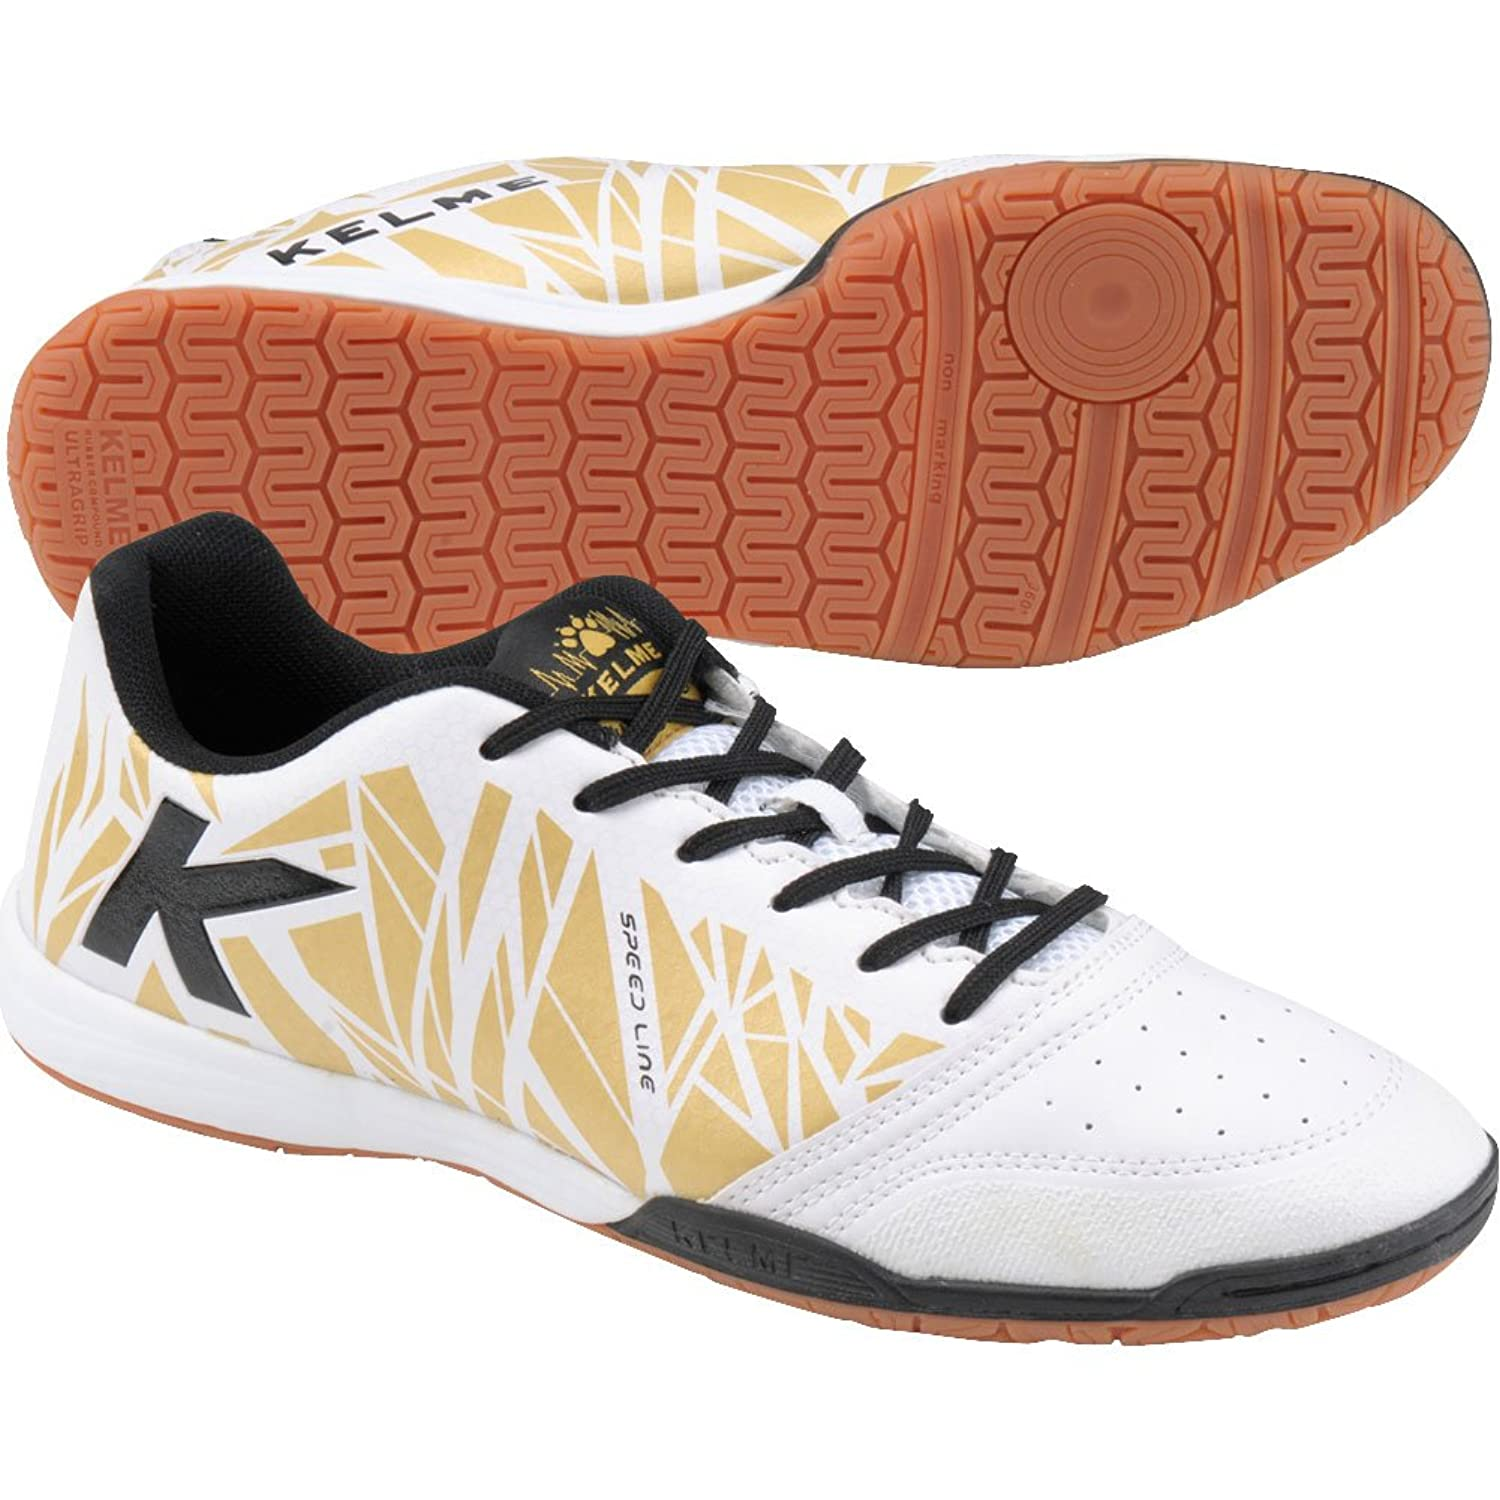 4b5a57b43a14 Kelme Mens Subito Ds Indoor Soccer Shoes best - matrafurediovoda.hu